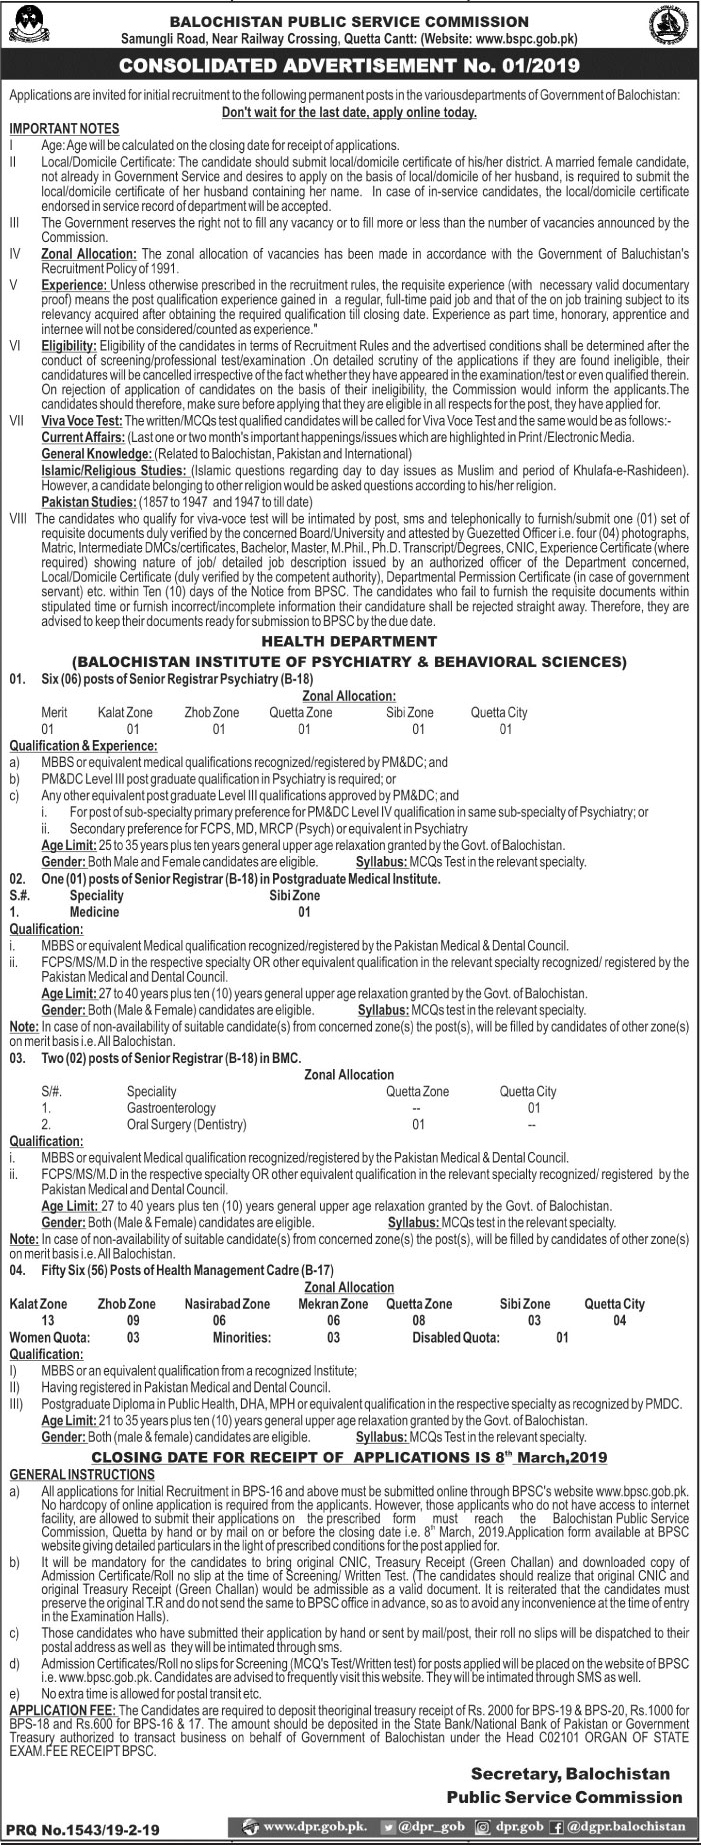 Balochistan Public Service Commission BPSC 20 Feb 2019 Jobs